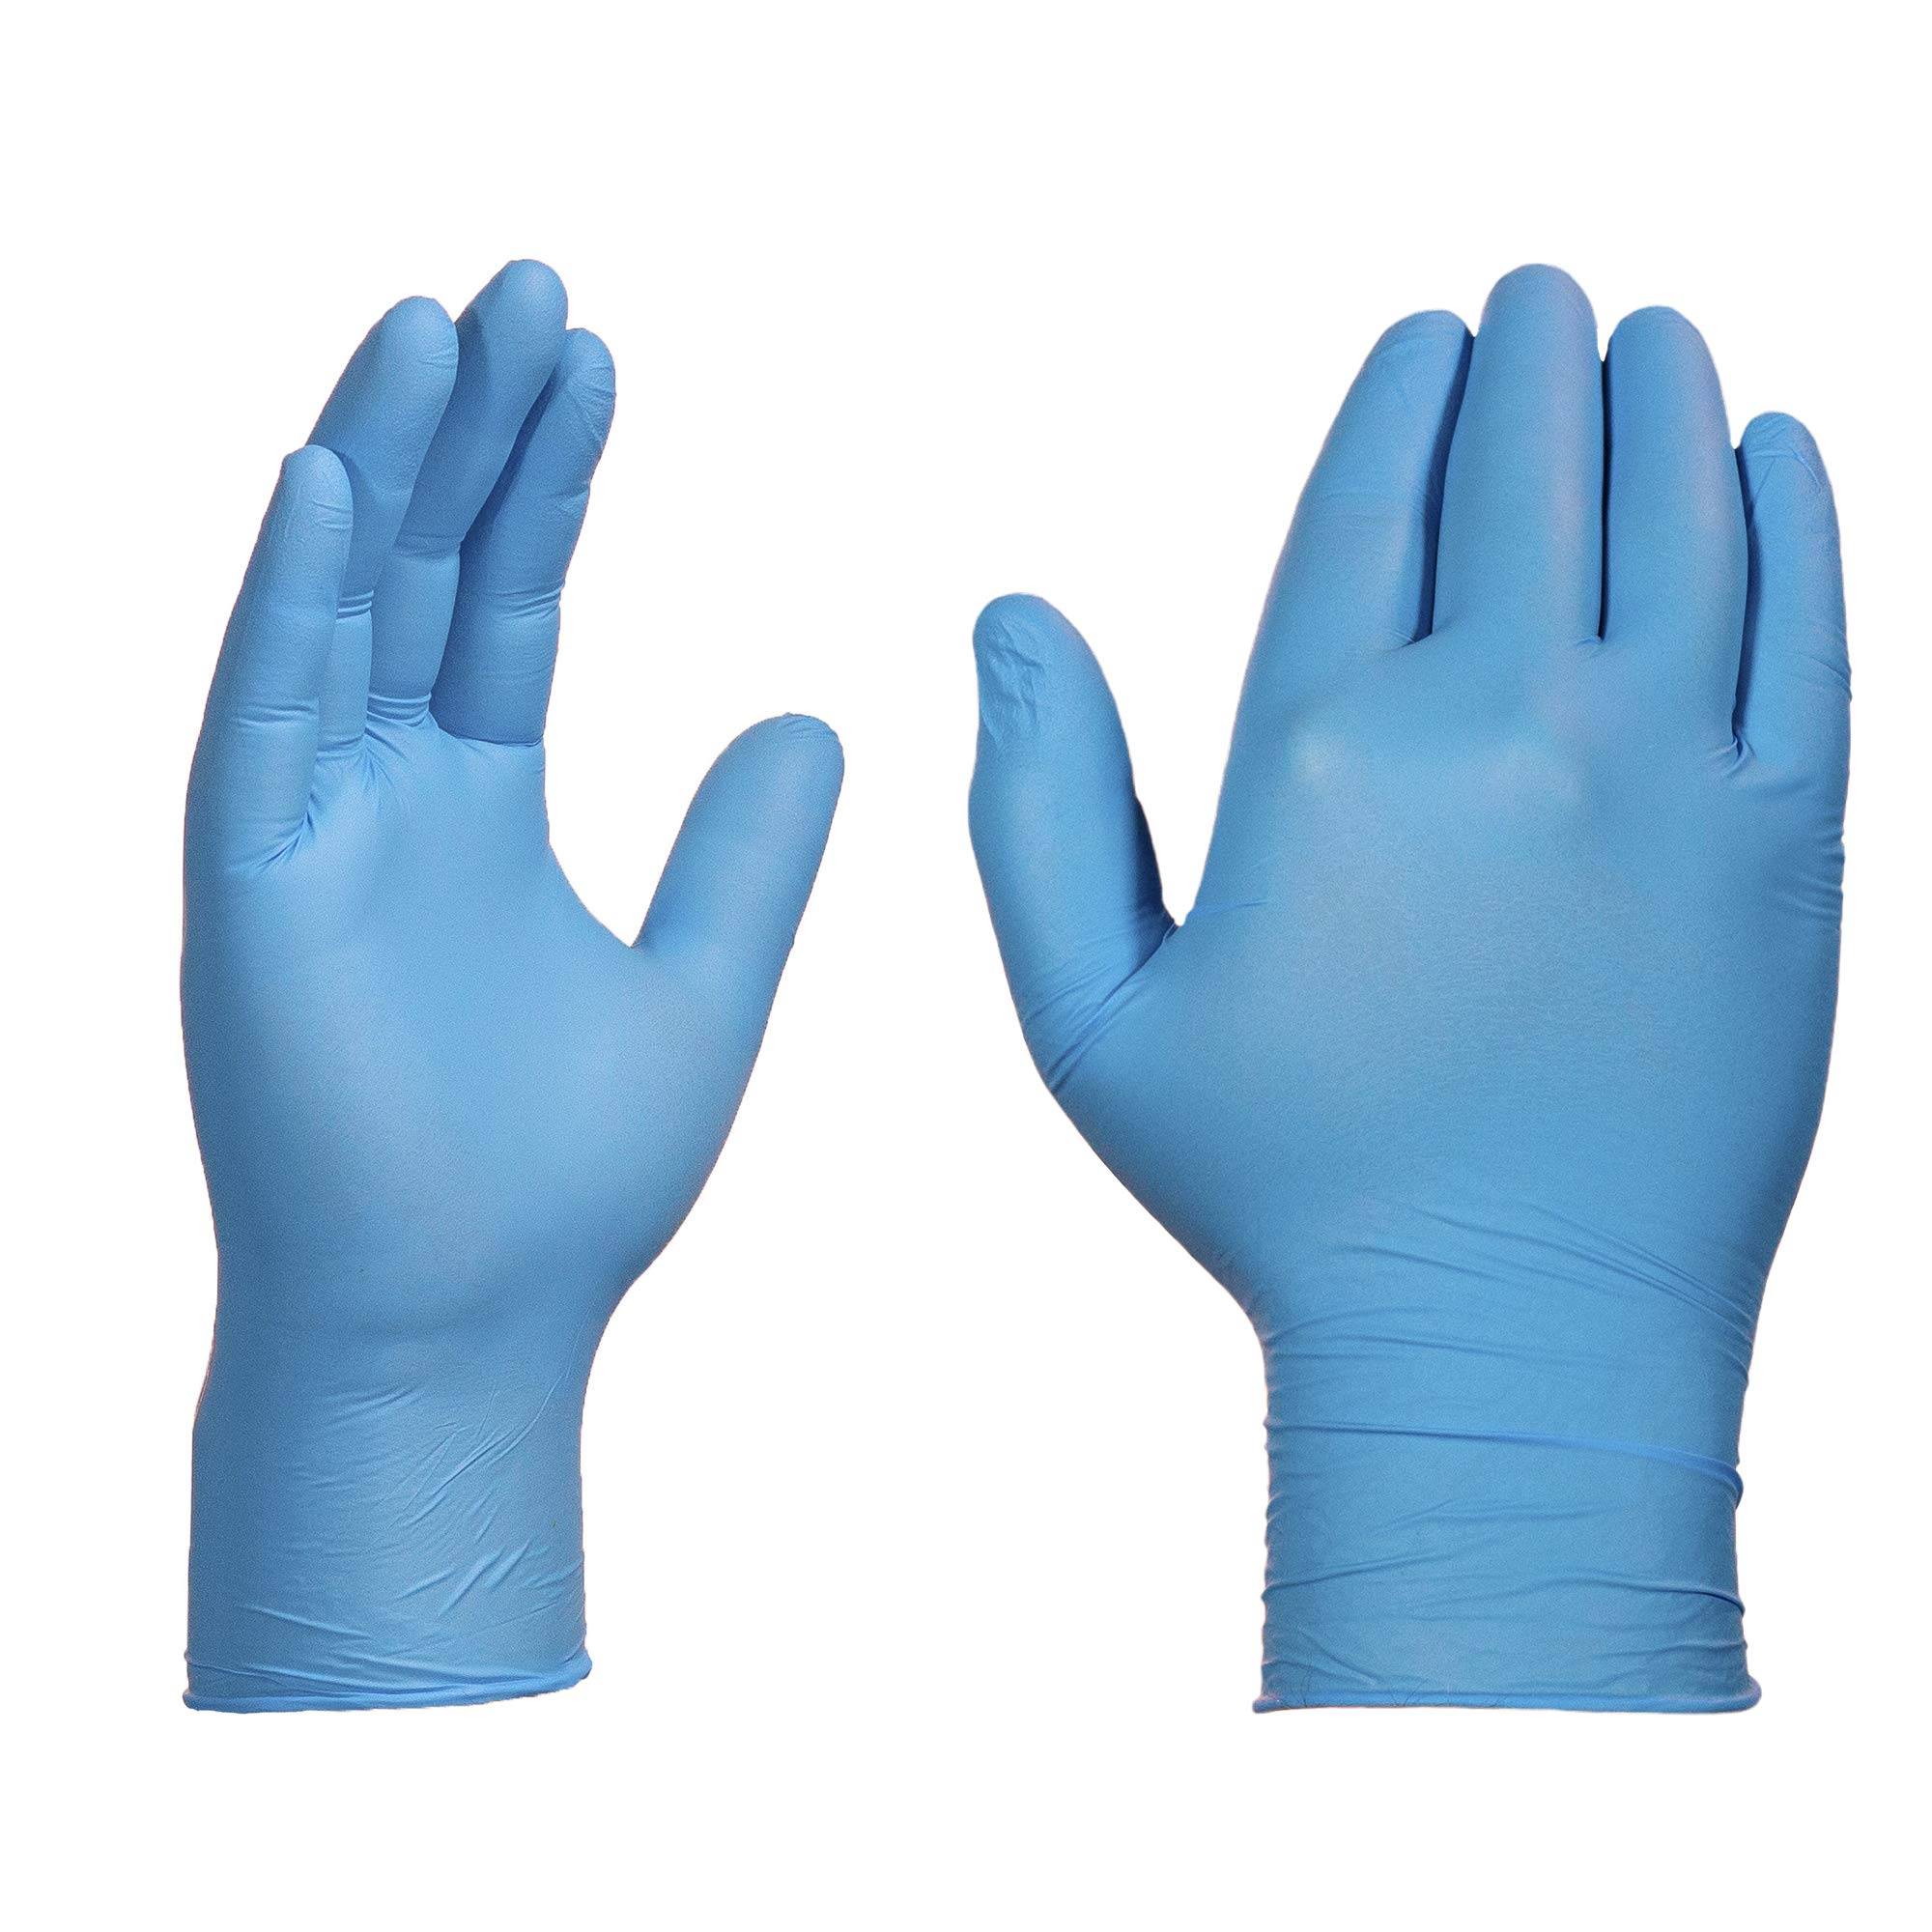 AMMEX Blue Nitrile Exam 4 Mil Disposable Gloves - Exam Grade, Powder-Free, Textured, Non-Sterile, Large, Case of 1000 by Ammex (Image #1)